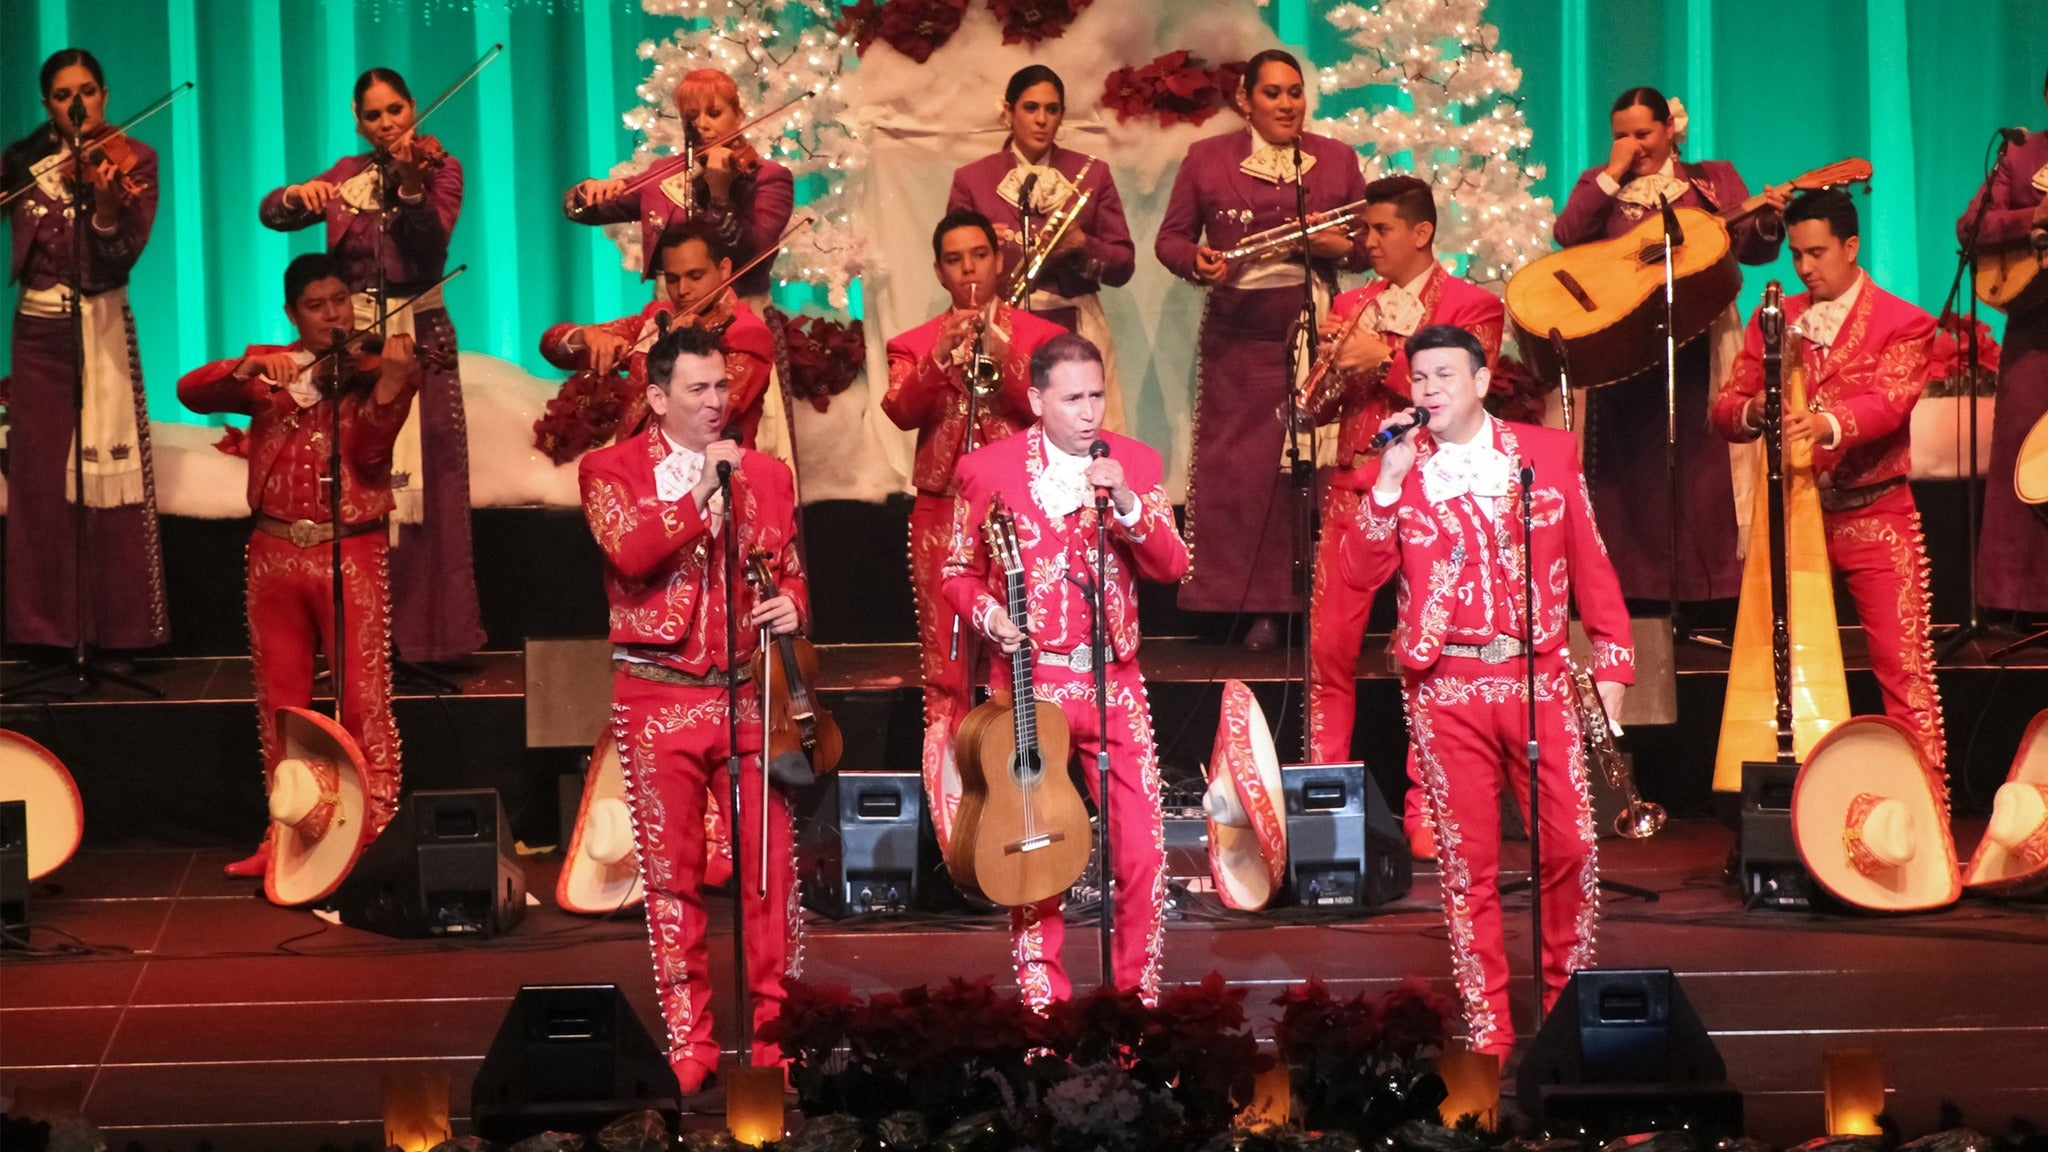 A Merry-achi Christmas at Fox Performing Arts Center